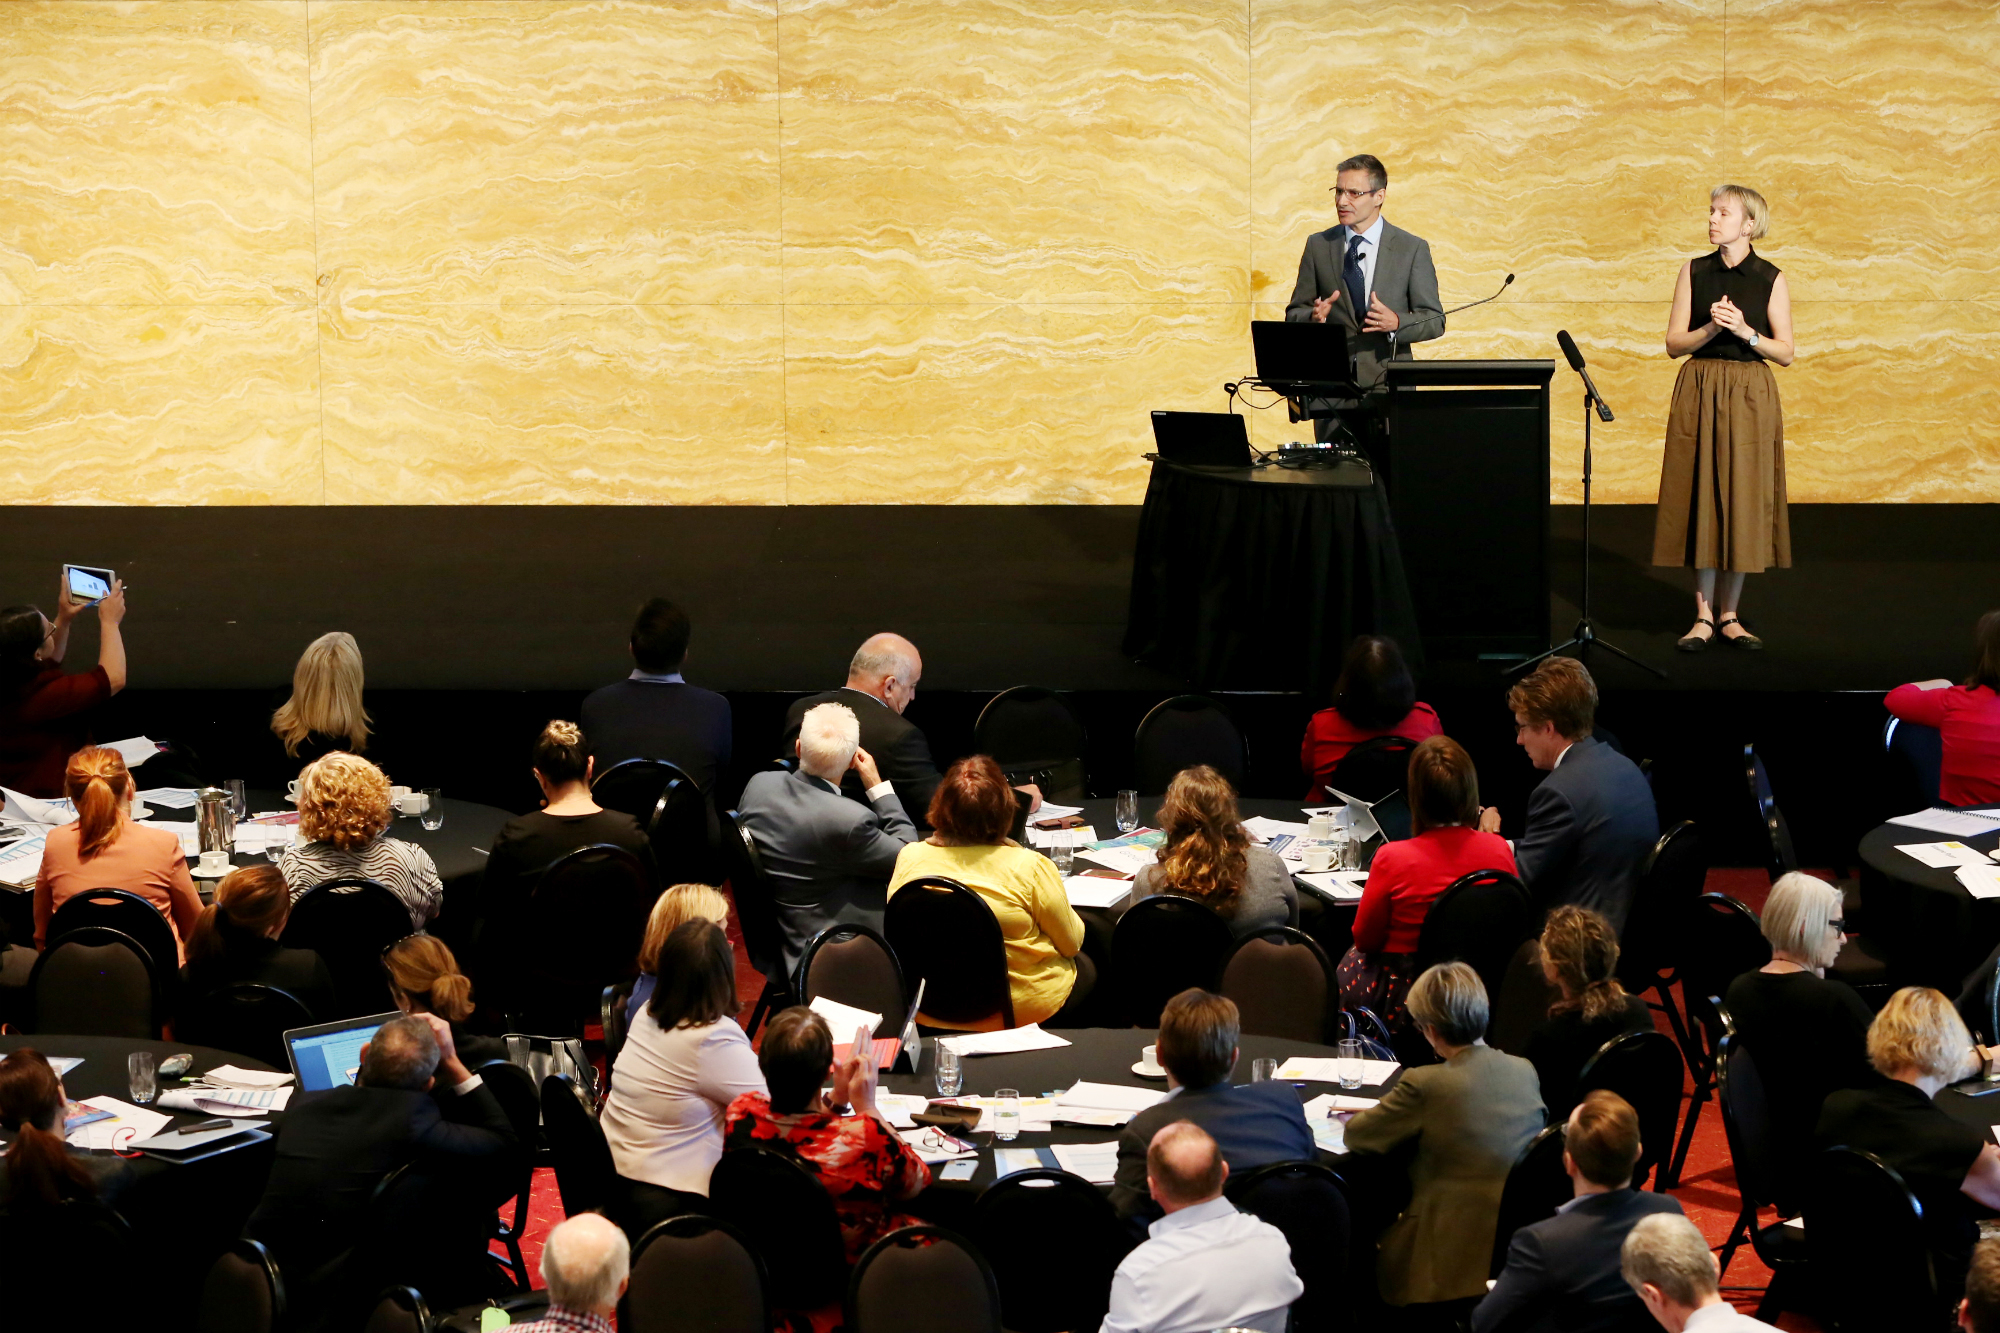 Dr Julian Trollor of UNSW  presents at a national roundtable discussing action needed to improve the mental health of people with intellectual disability.